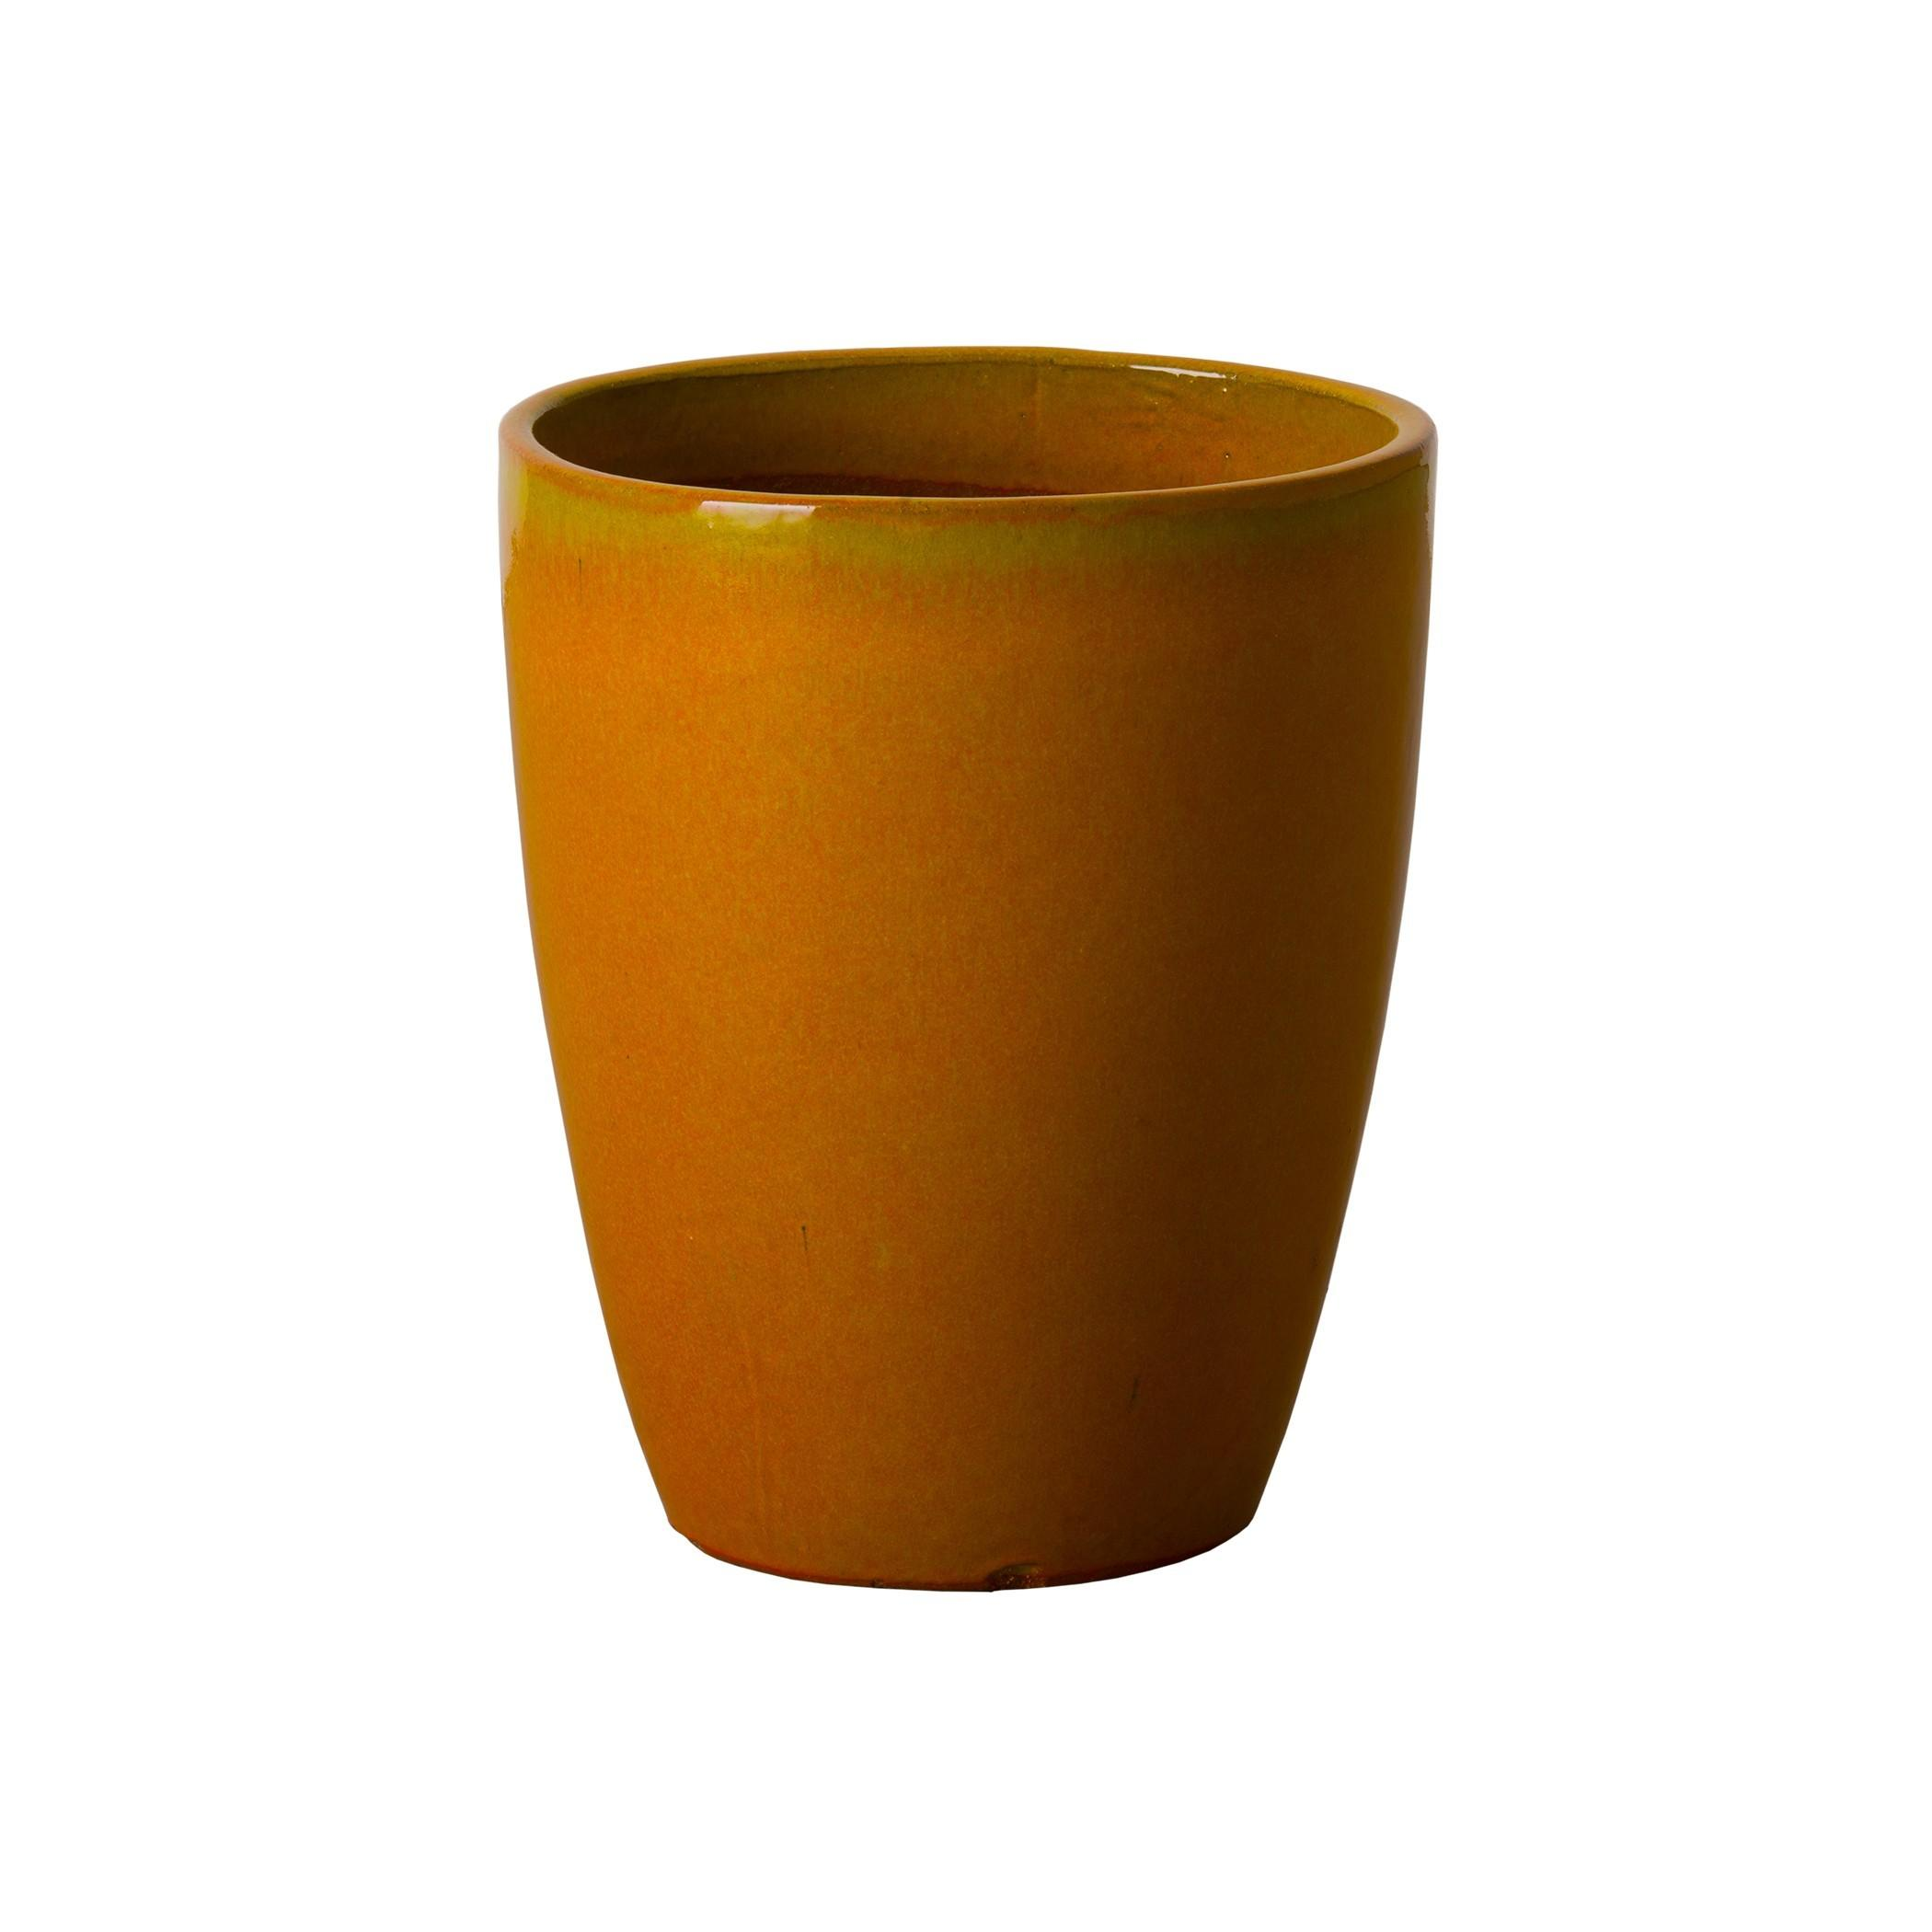 Bullet Planter Guest Home Decorations Insight